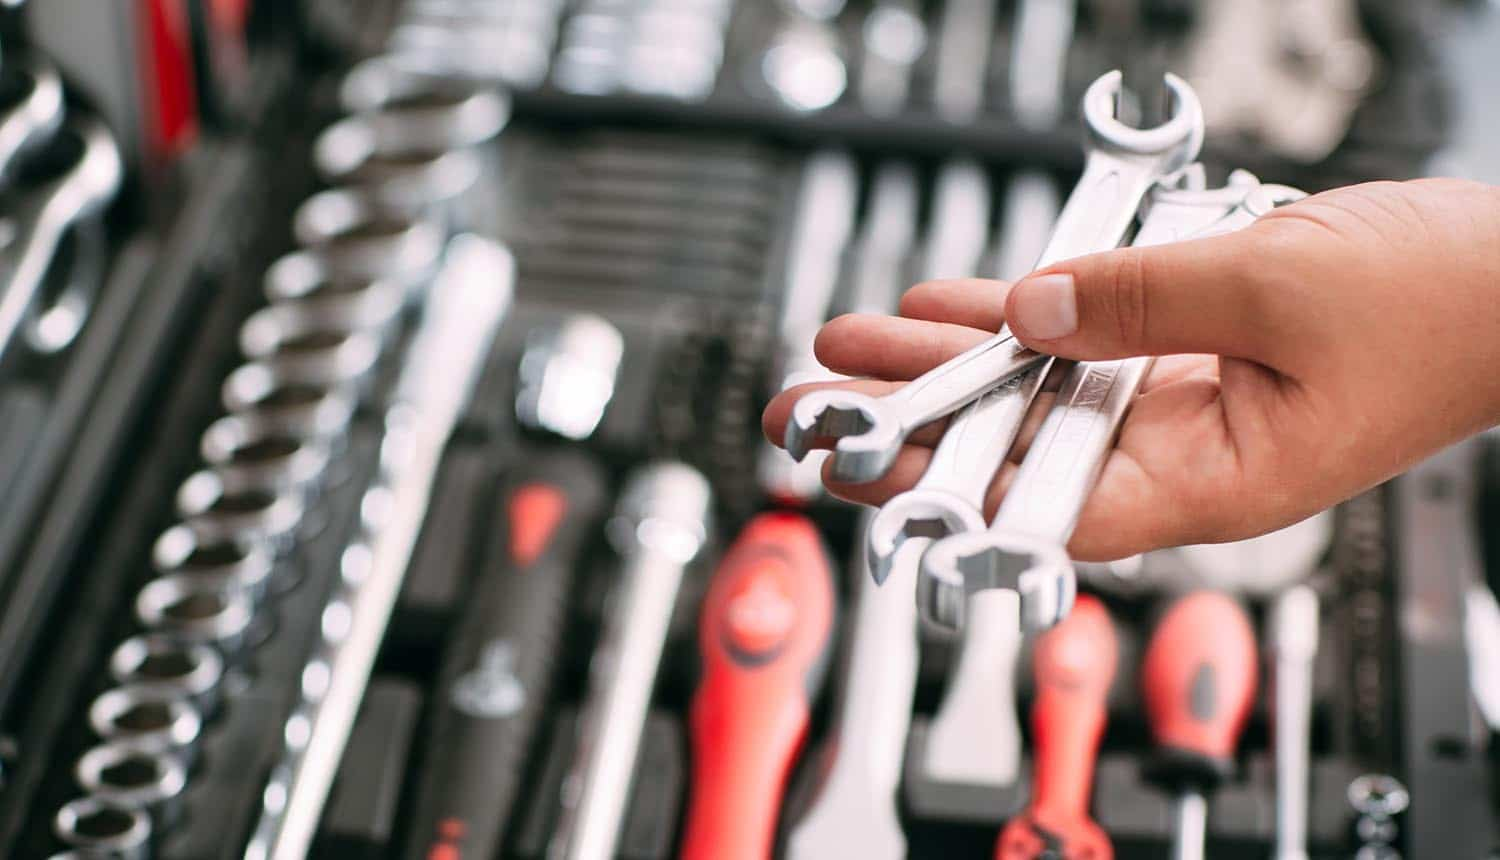 Image of man holding spanners above a toolbox signifying the must-have security tools for achieving GDPR compliance